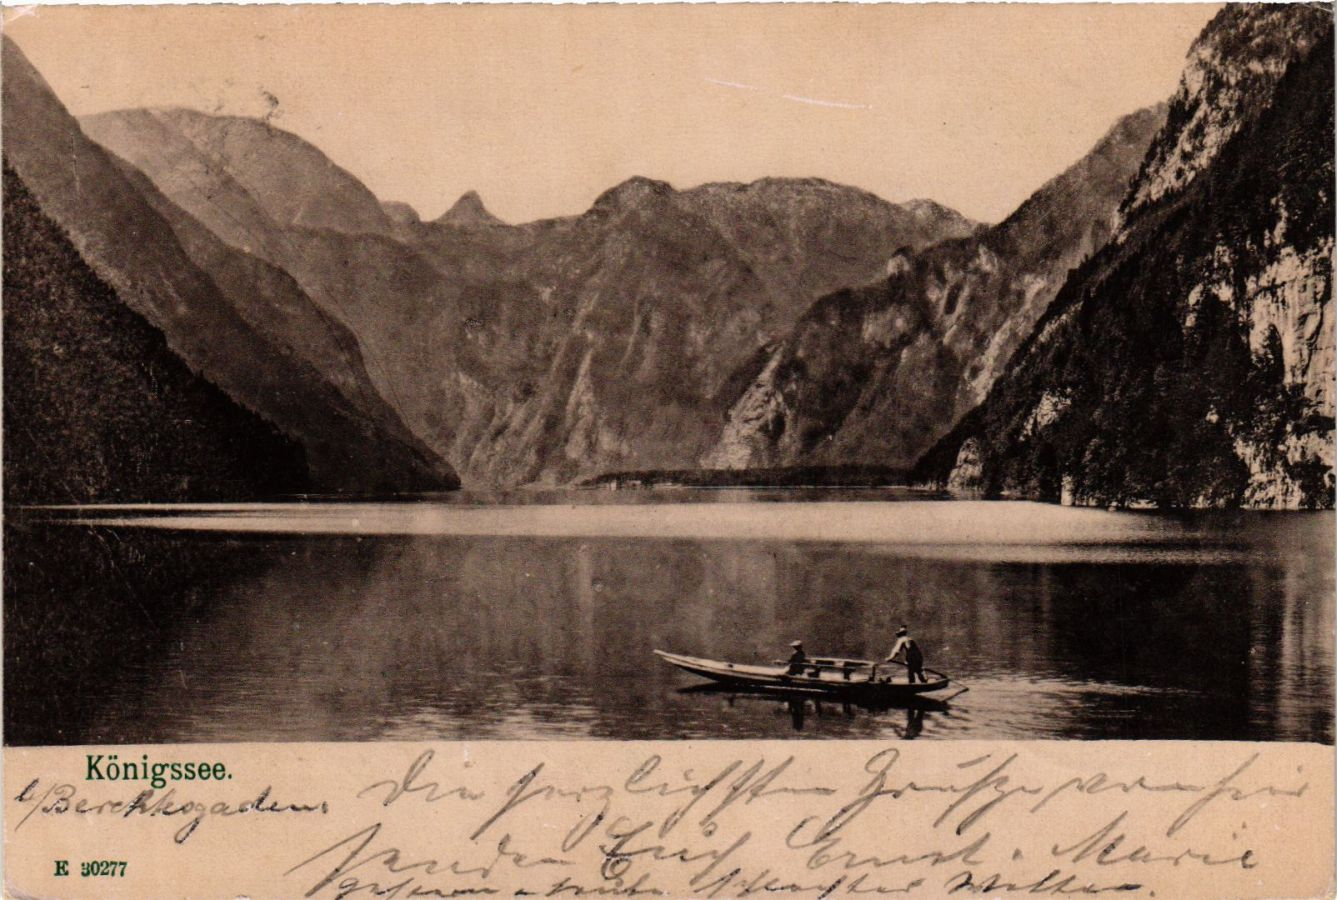 CPA-AK-Konigssee-GERMANY-879012 miniature 1